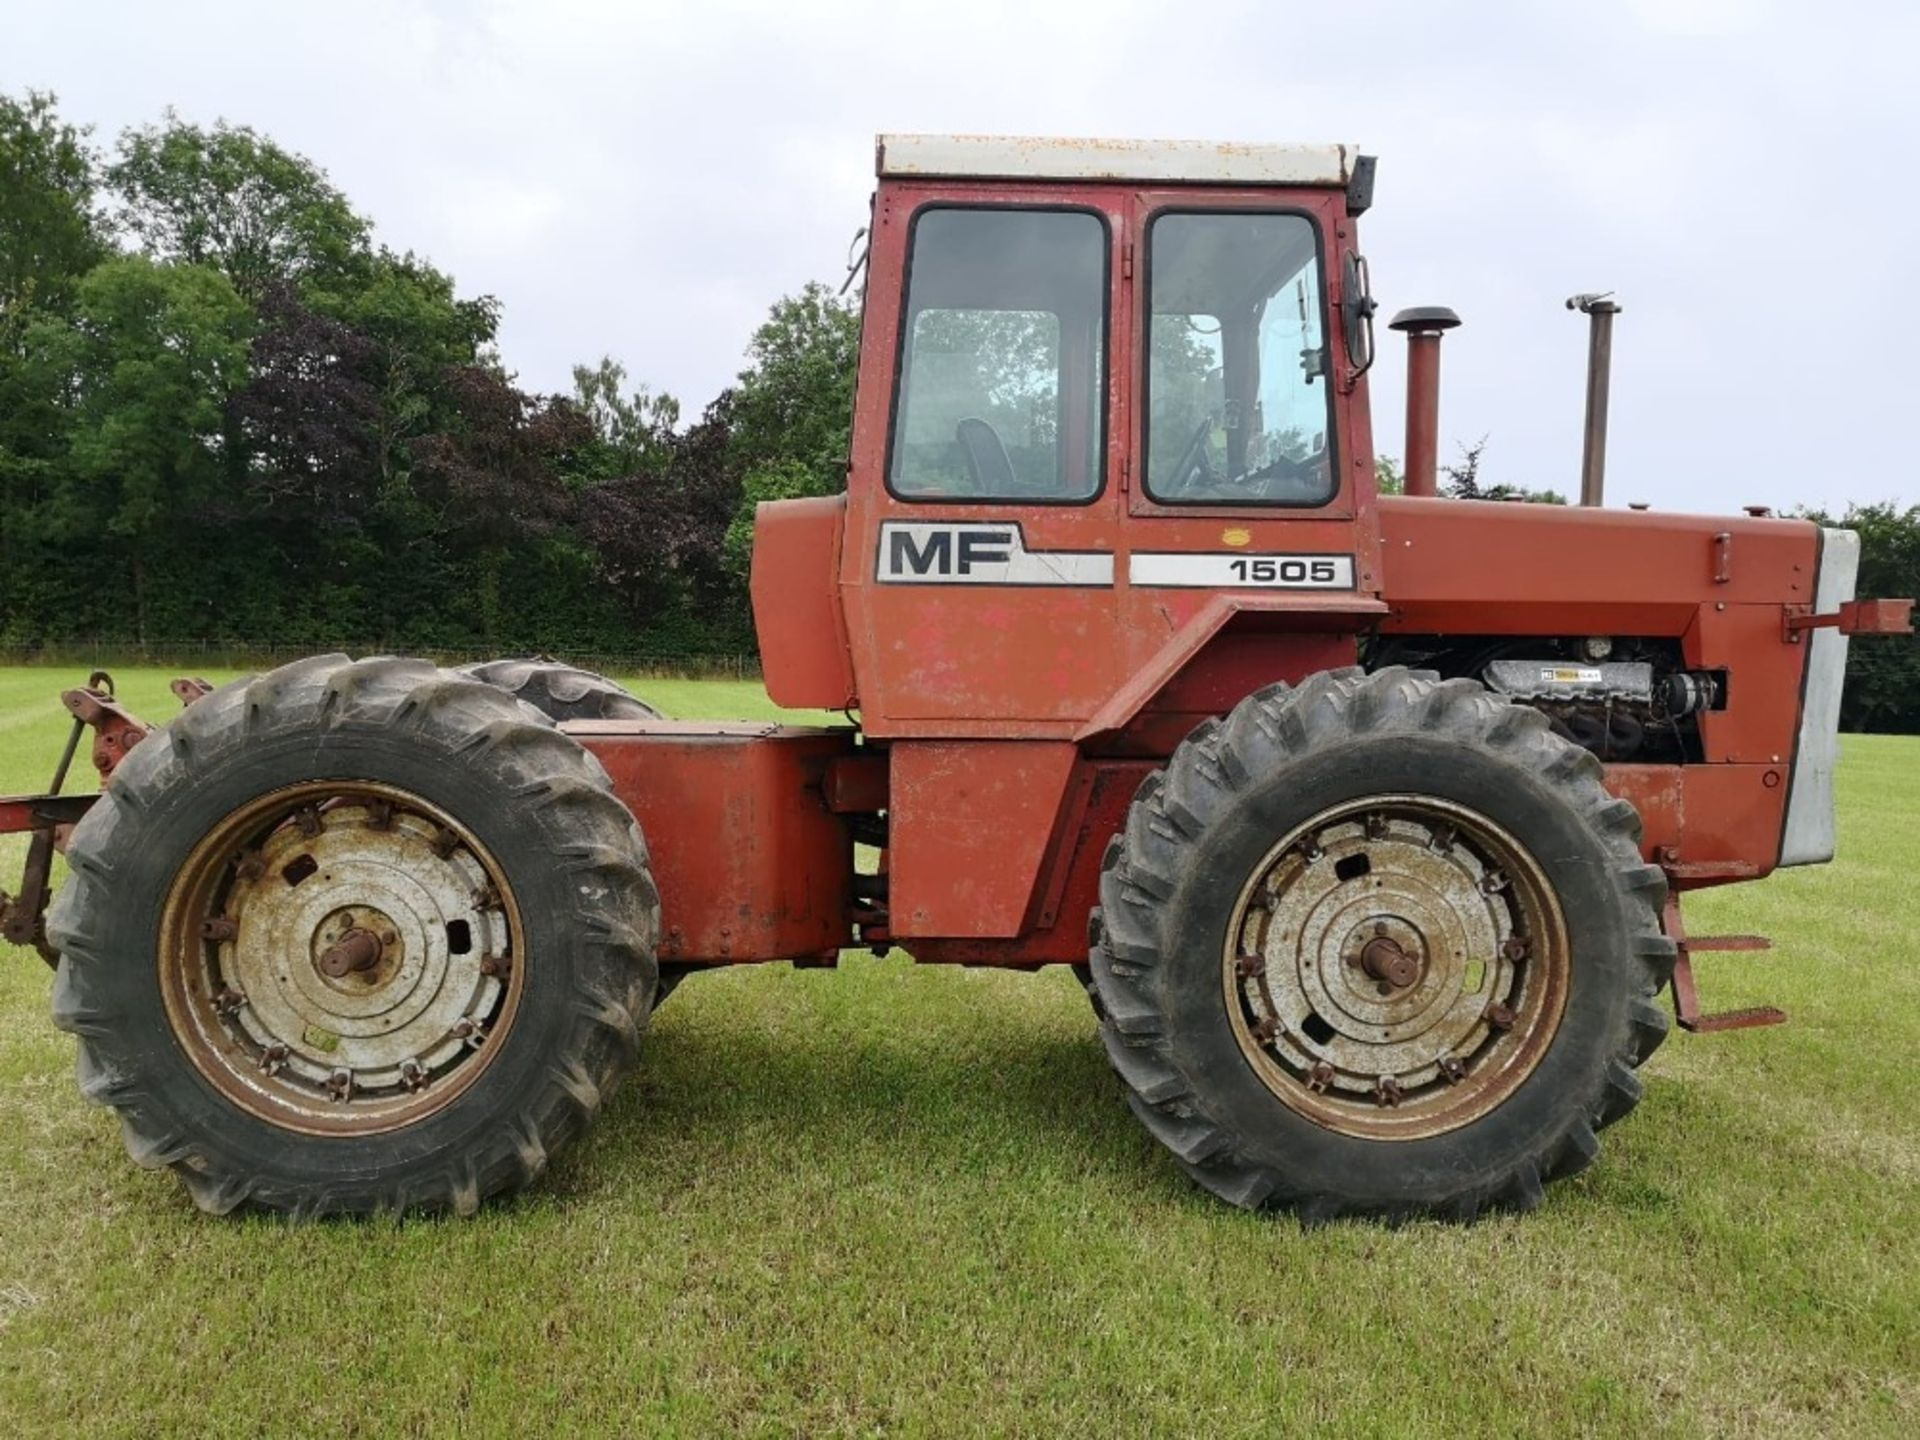 Lot 244 - MF 1505 ARTICULATED TRACTOR 180hp V8 ENGINE 1972 ROPS MODEL 1831 SEB 683S 5099 HOURS * NO VAT ON